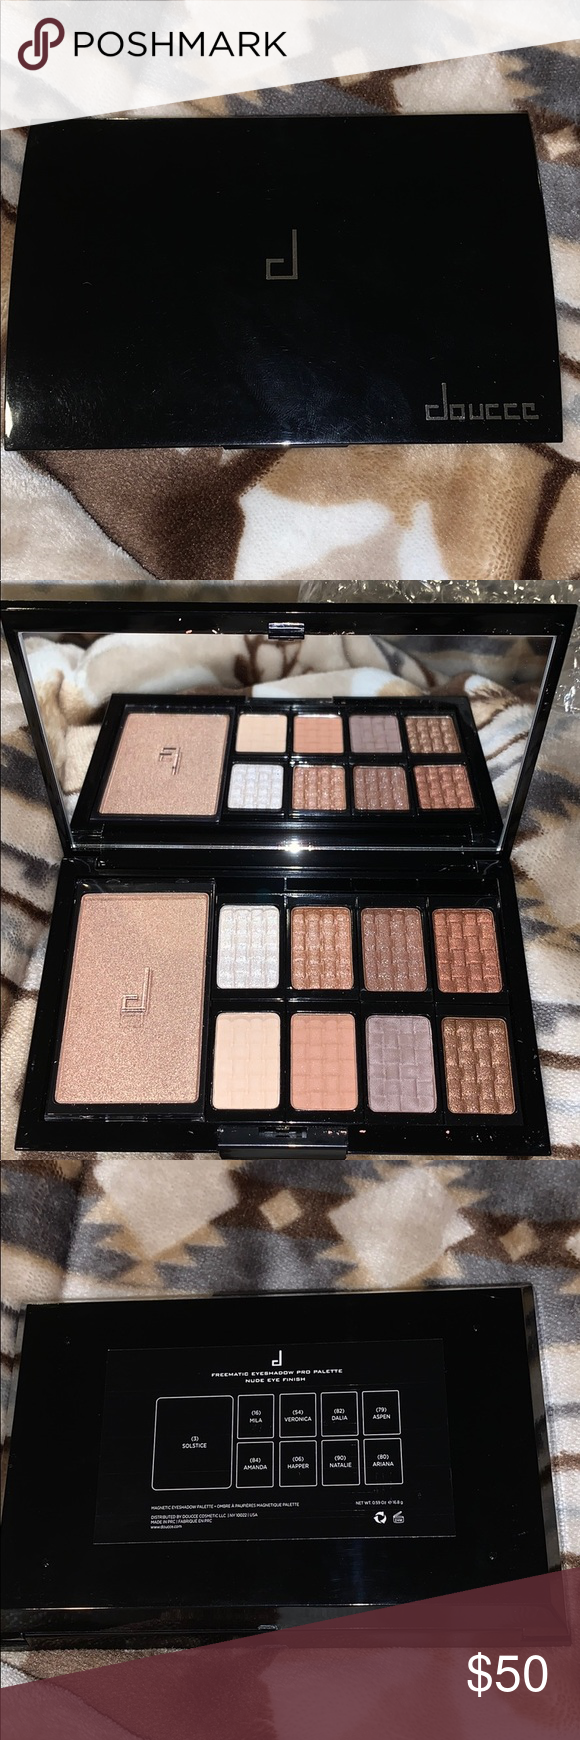 Doucce Freematic Eye Shadow Magnetic Pro Palette - Nude   eBay